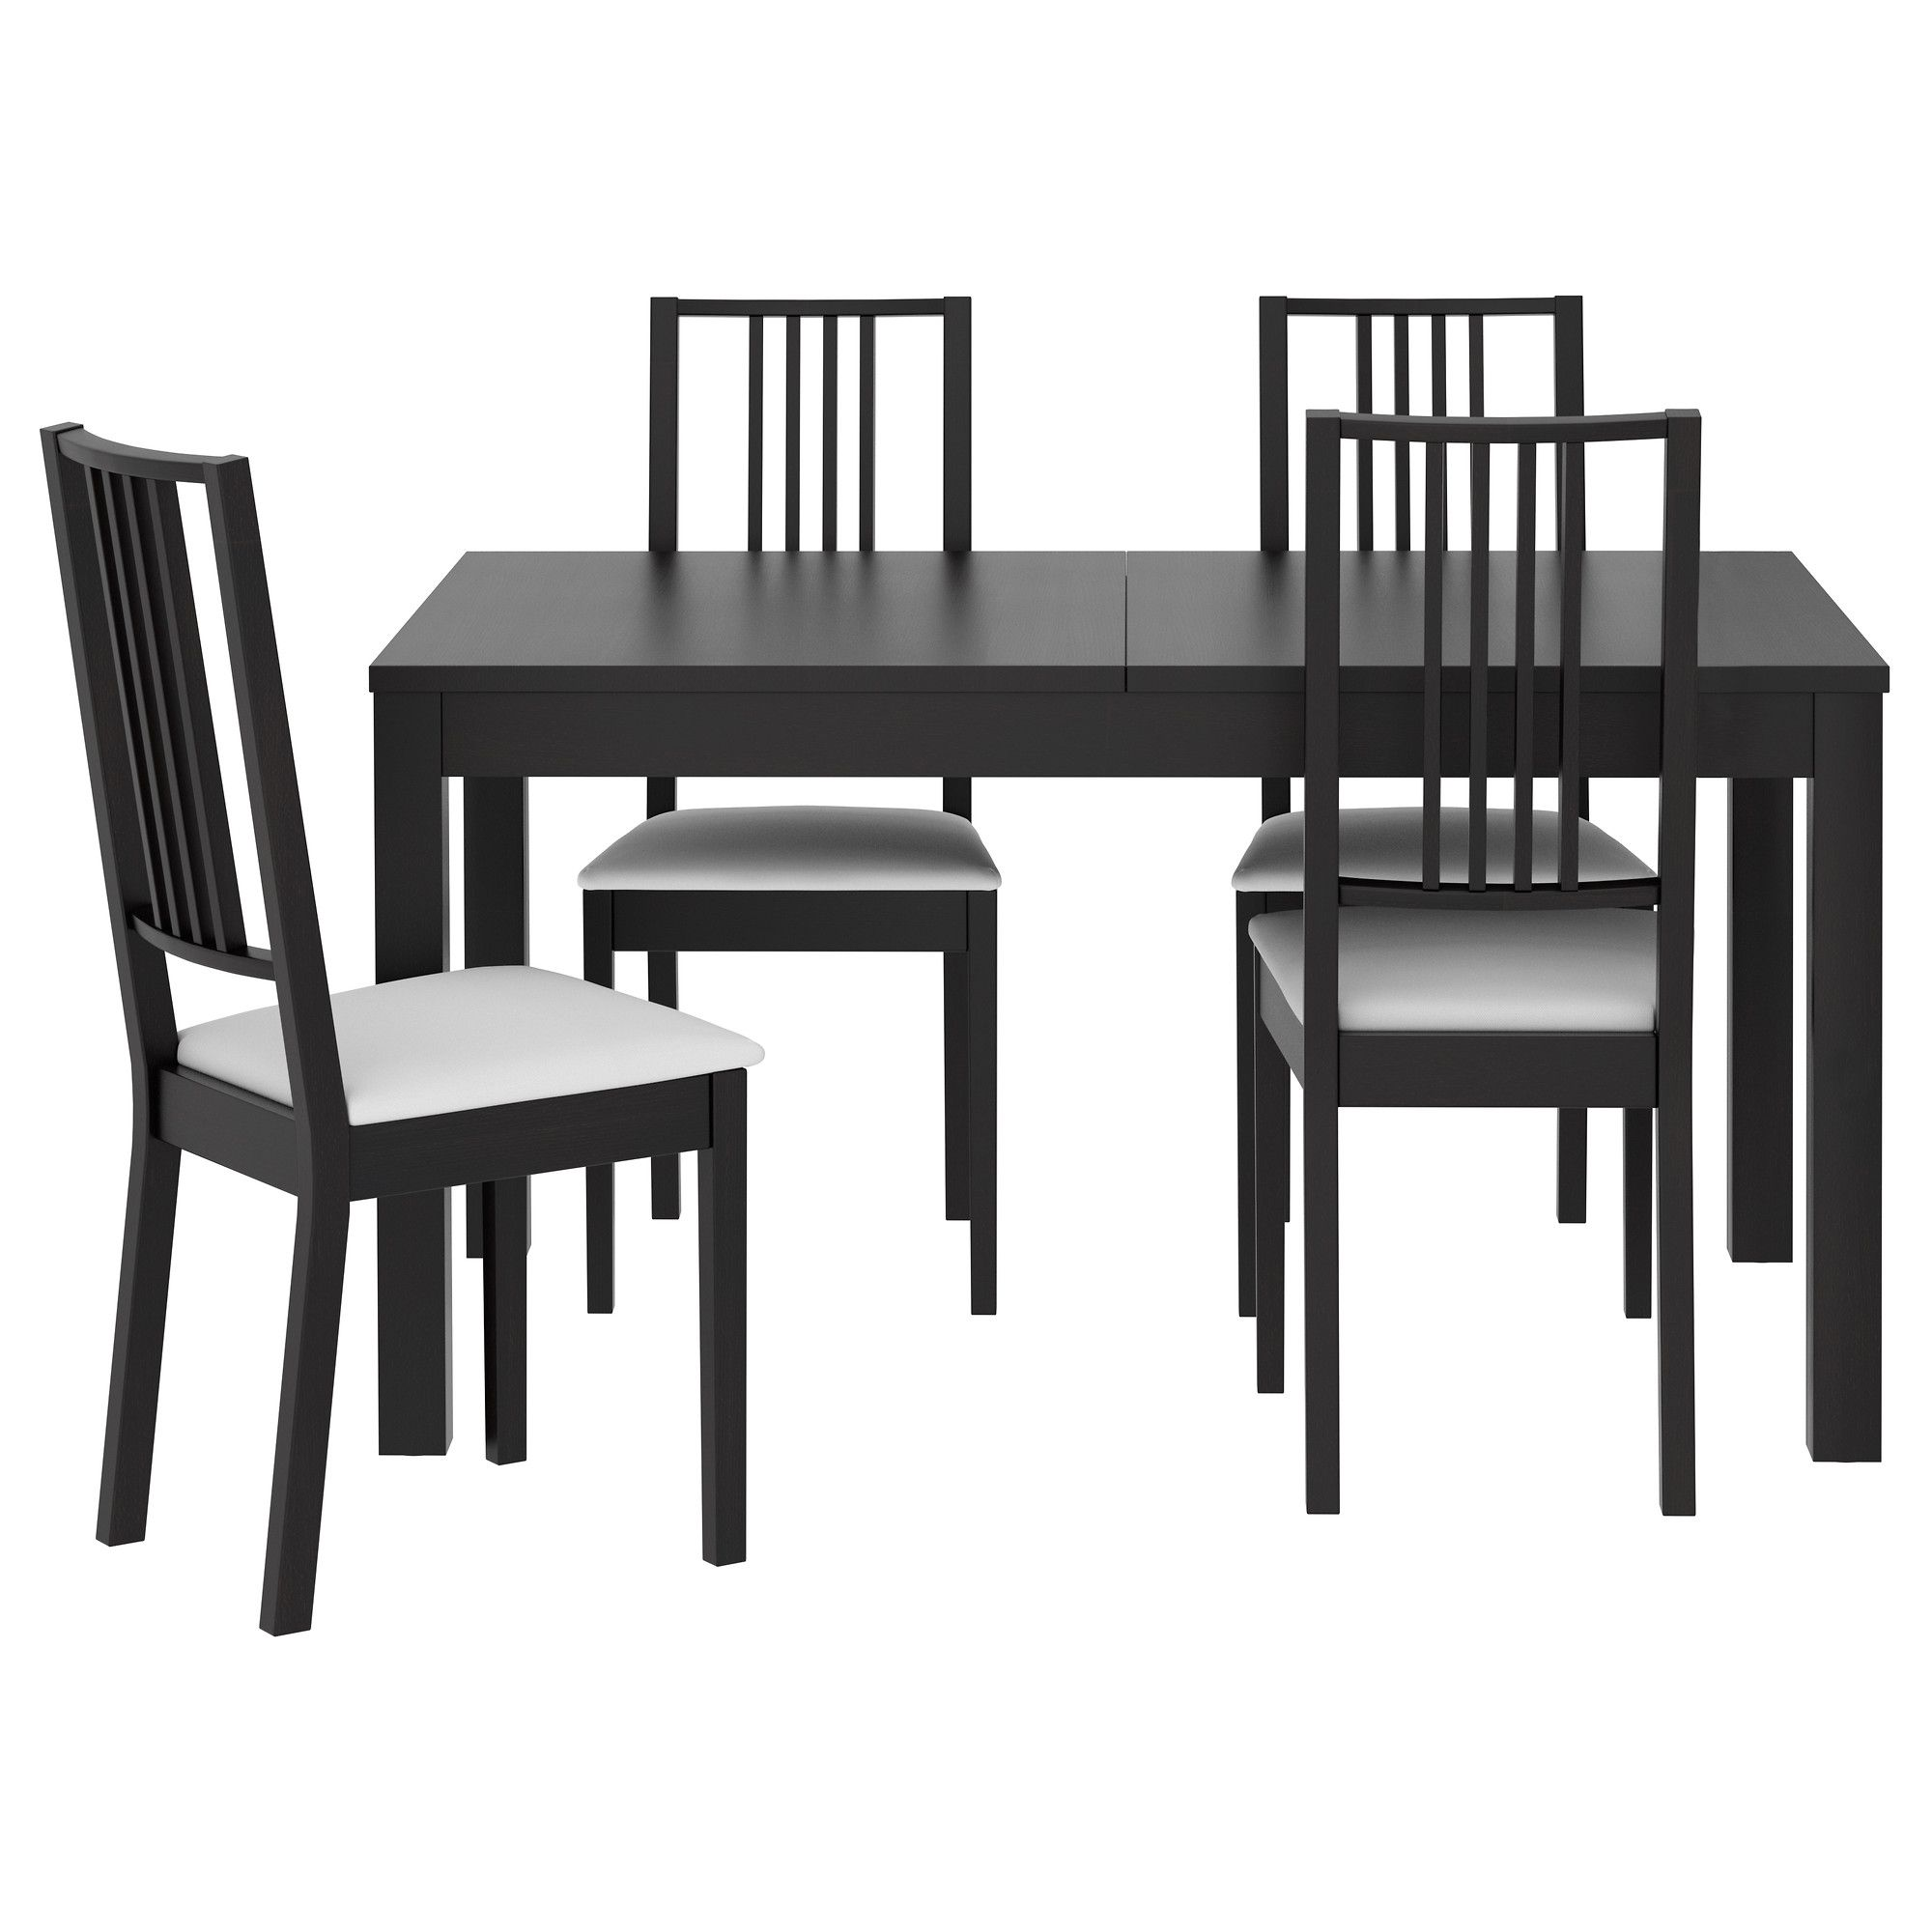 Dining Room Tables Ikea: US - Furniture And Home Furnishings